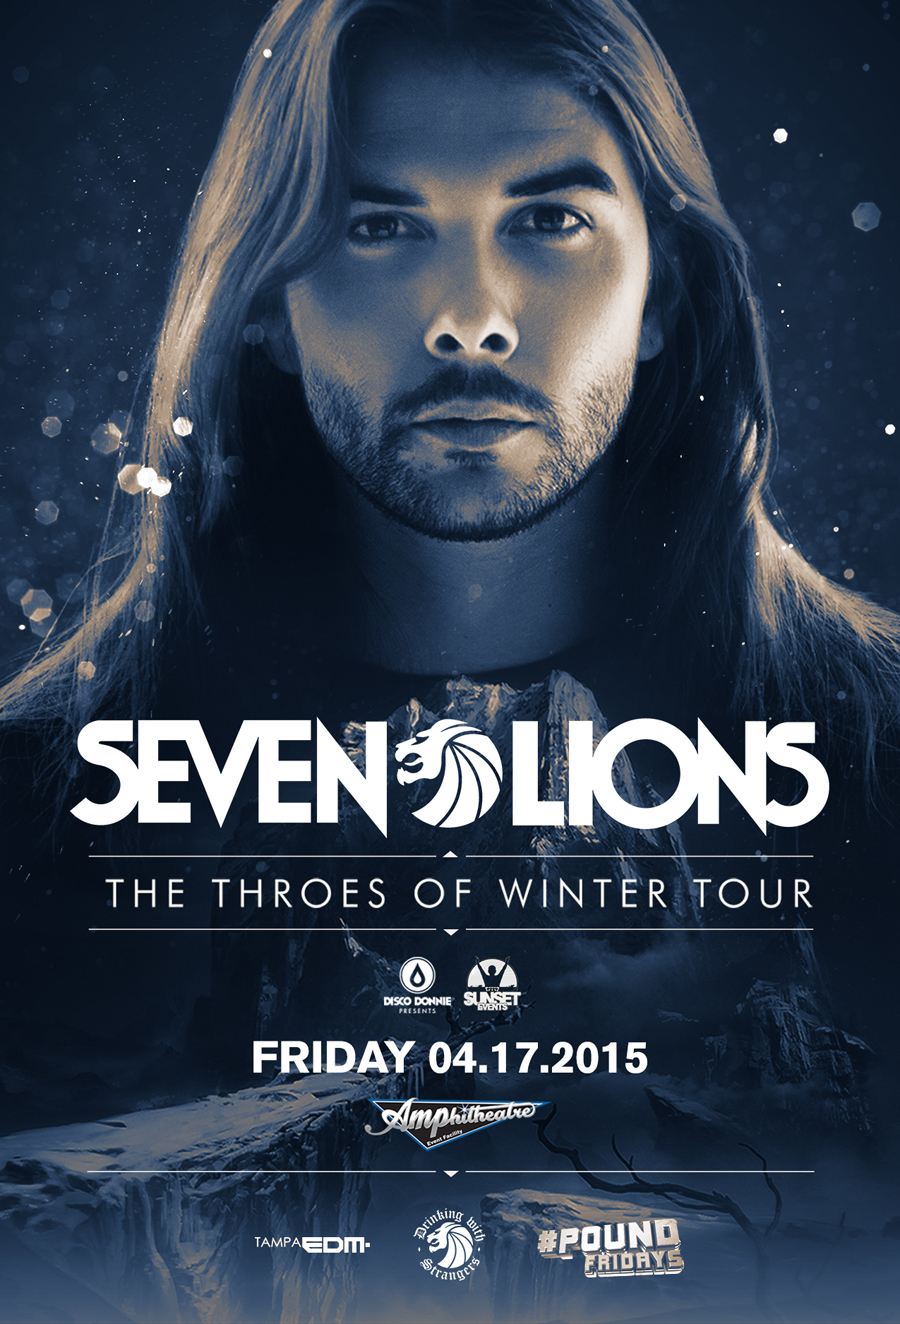 Seven Lions – The Throes of Winter Tour – Friday, April 17, 2015